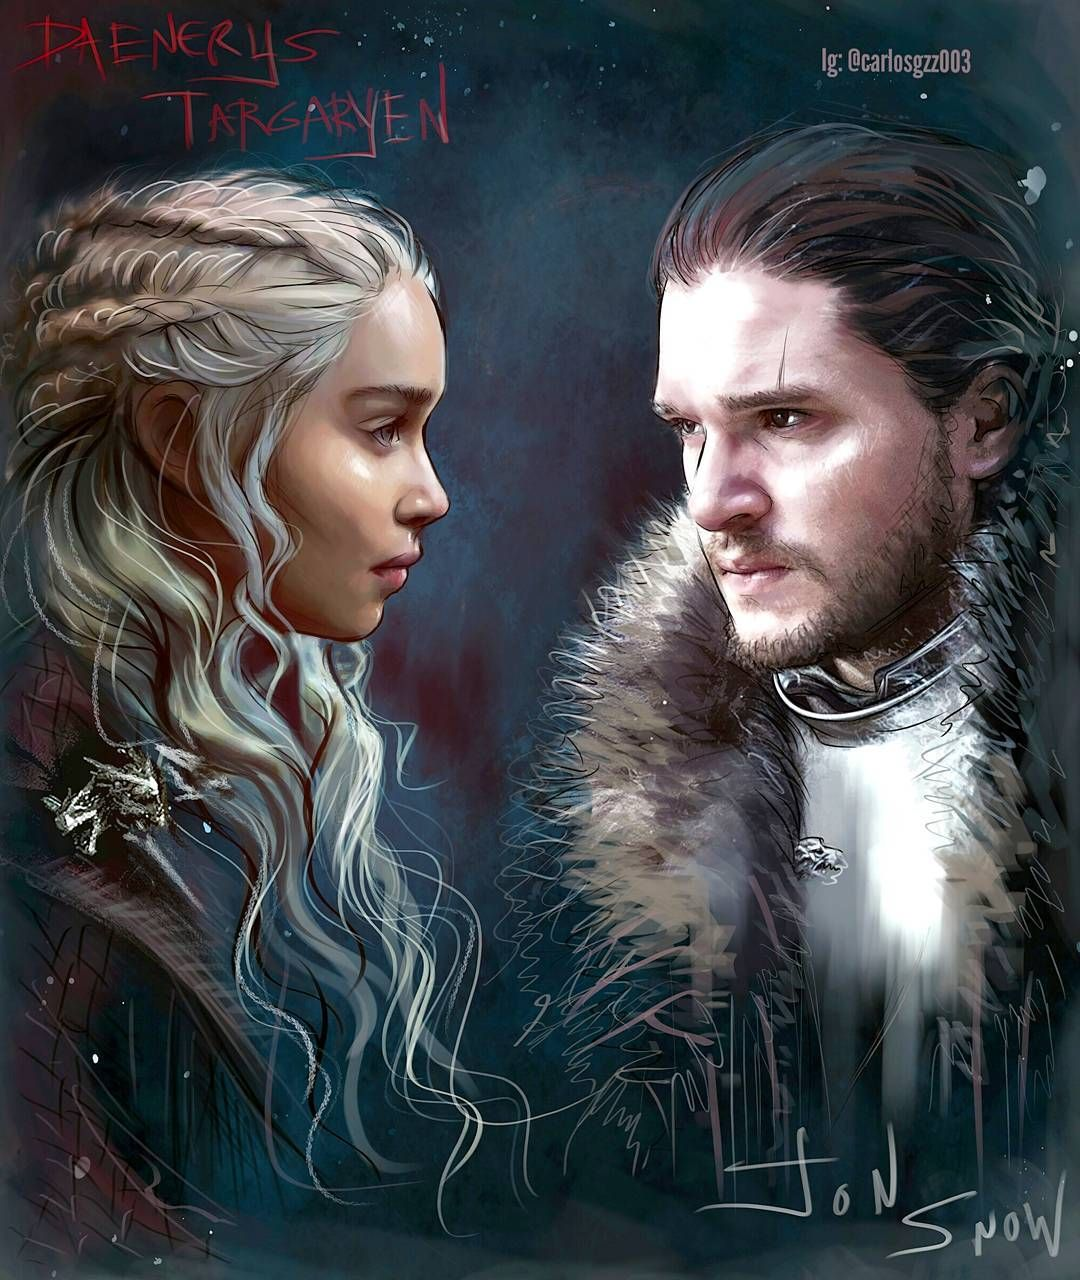 Danerys Targaryen And Jon Snow By Carloz Gzz Jon Snow And Daenerys Game Of Thrones Artwork A Song Of Ice And Fire